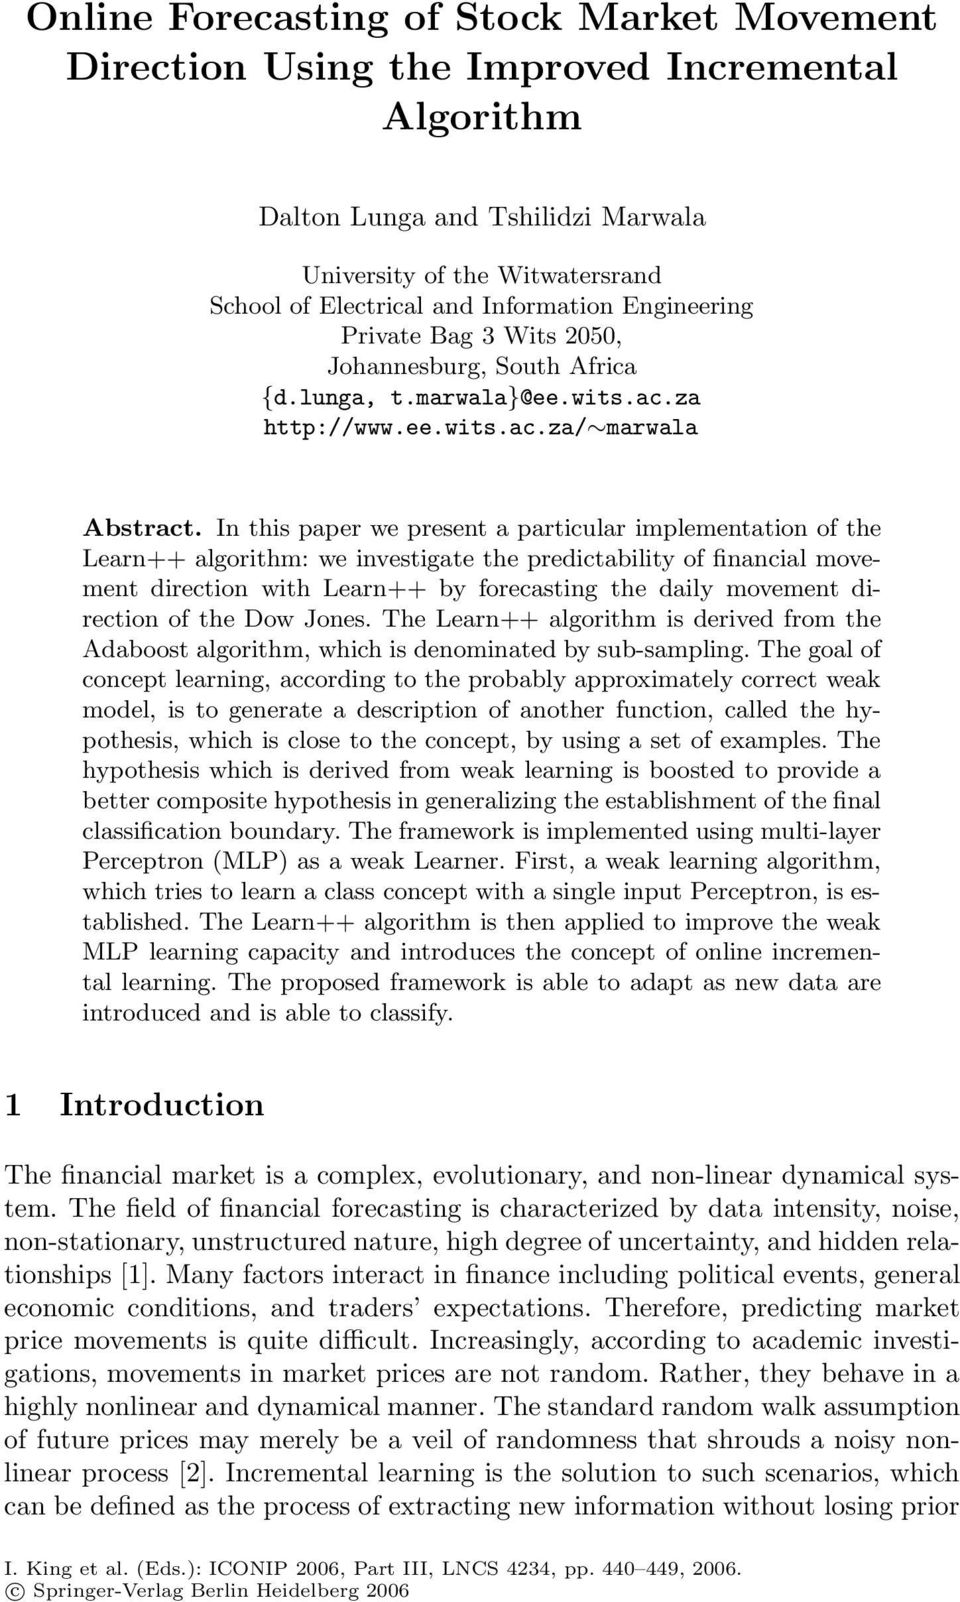 In this paper we present a particular implementation of the Learn++ algorithm: we investigate the predictability of financial movement direction with Learn++ by forecasting the daily movement